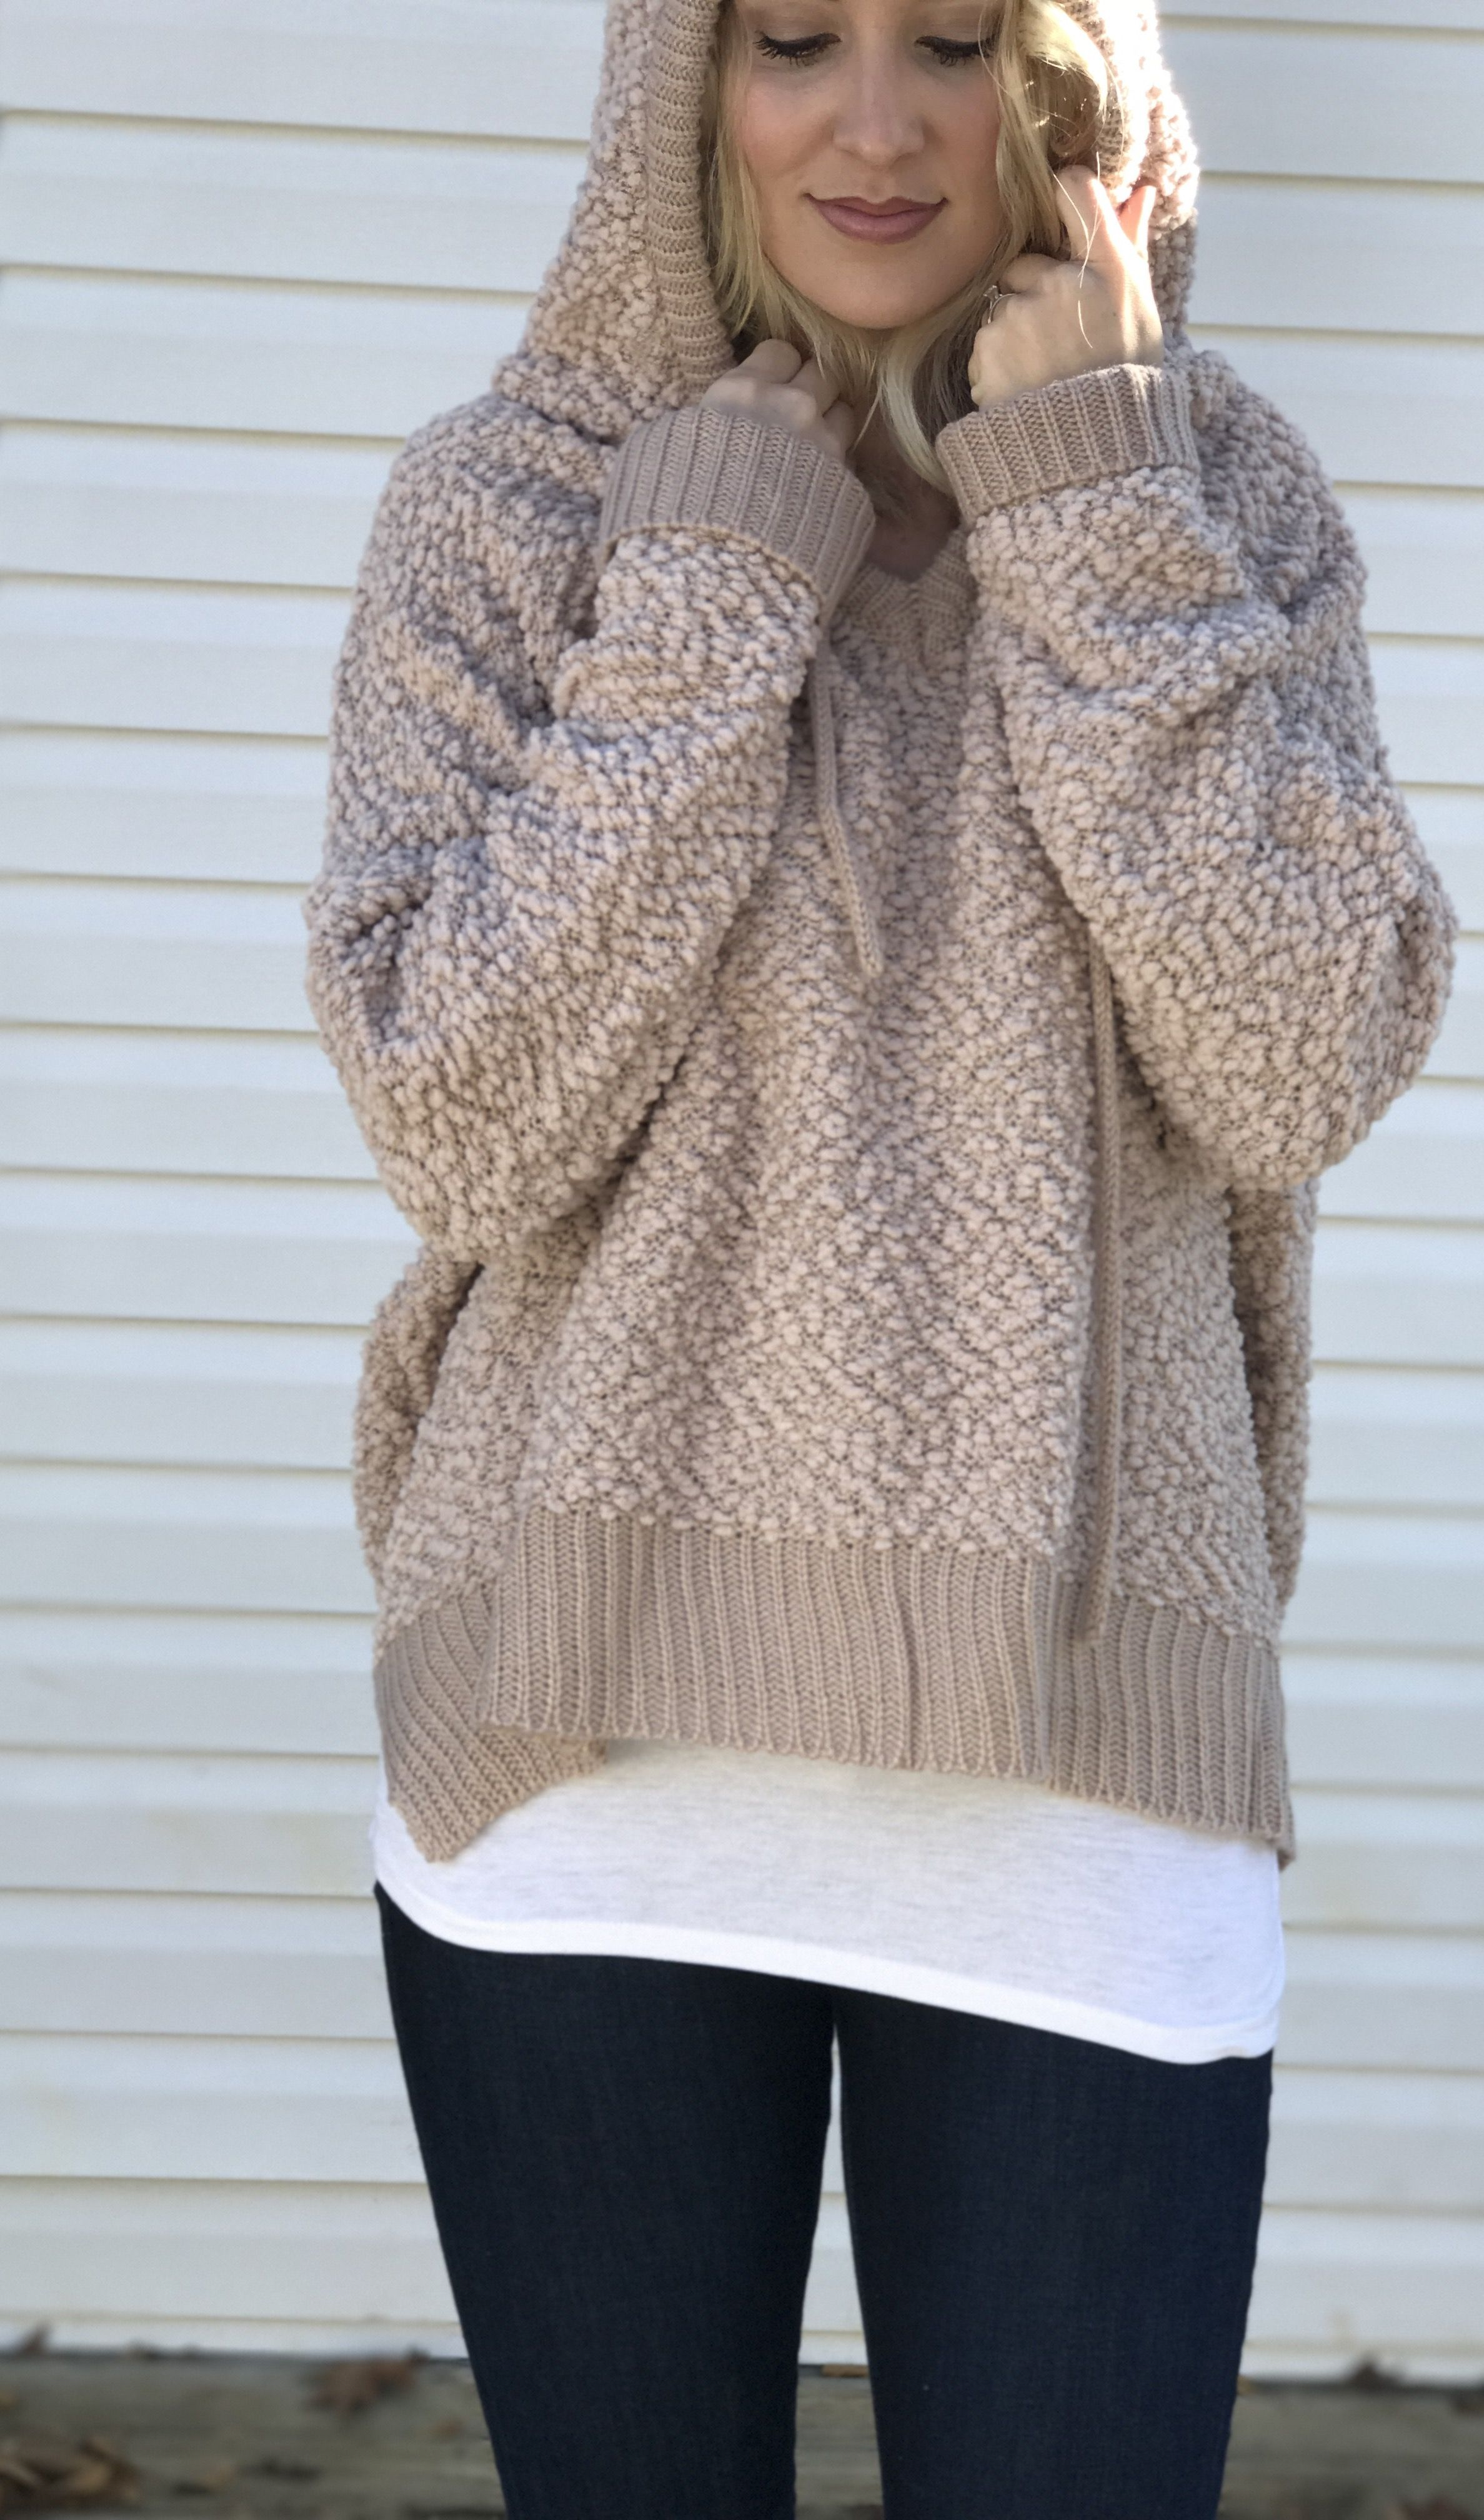 My Favorite Alternative To Patagonia Is This Cute Popcorn Pullover